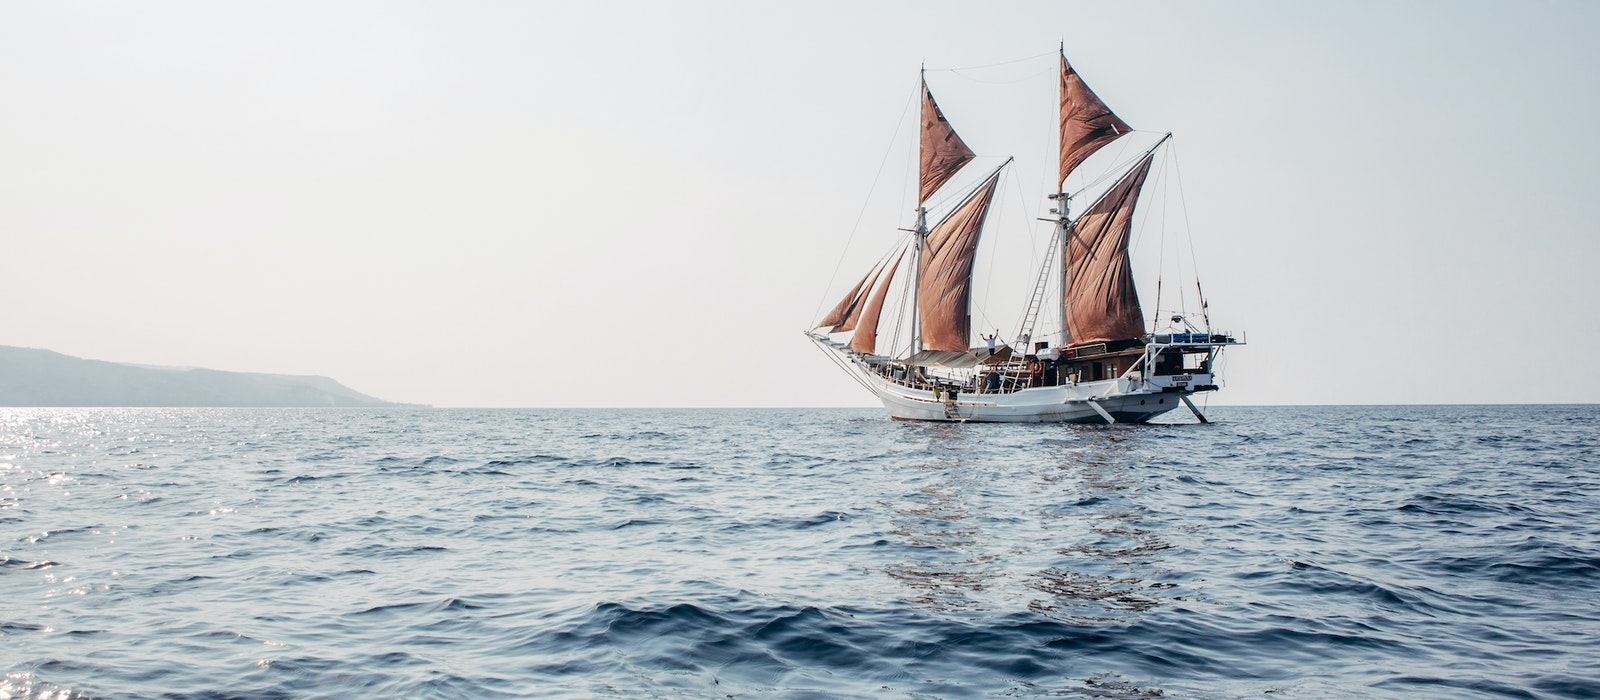 Unlike an ocean liner, the Katharina's ship body was built by hand in the style of traditional Indonesian fishing vessels.